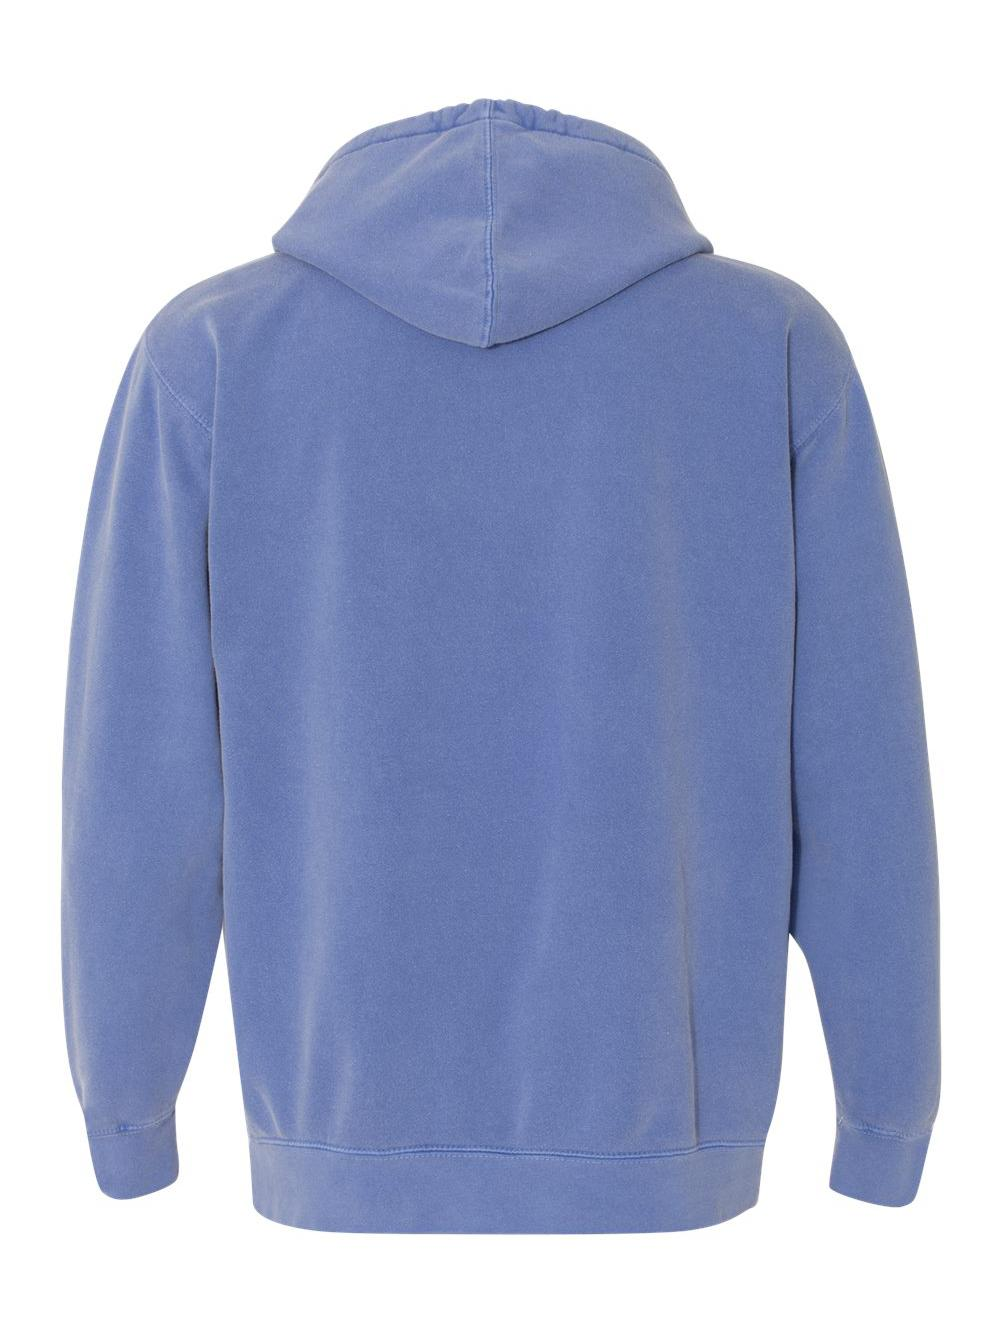 Comfort-Colors-Garment-Dyed-Hooded-Pullover-Sweatshirt-1567 thumbnail 16